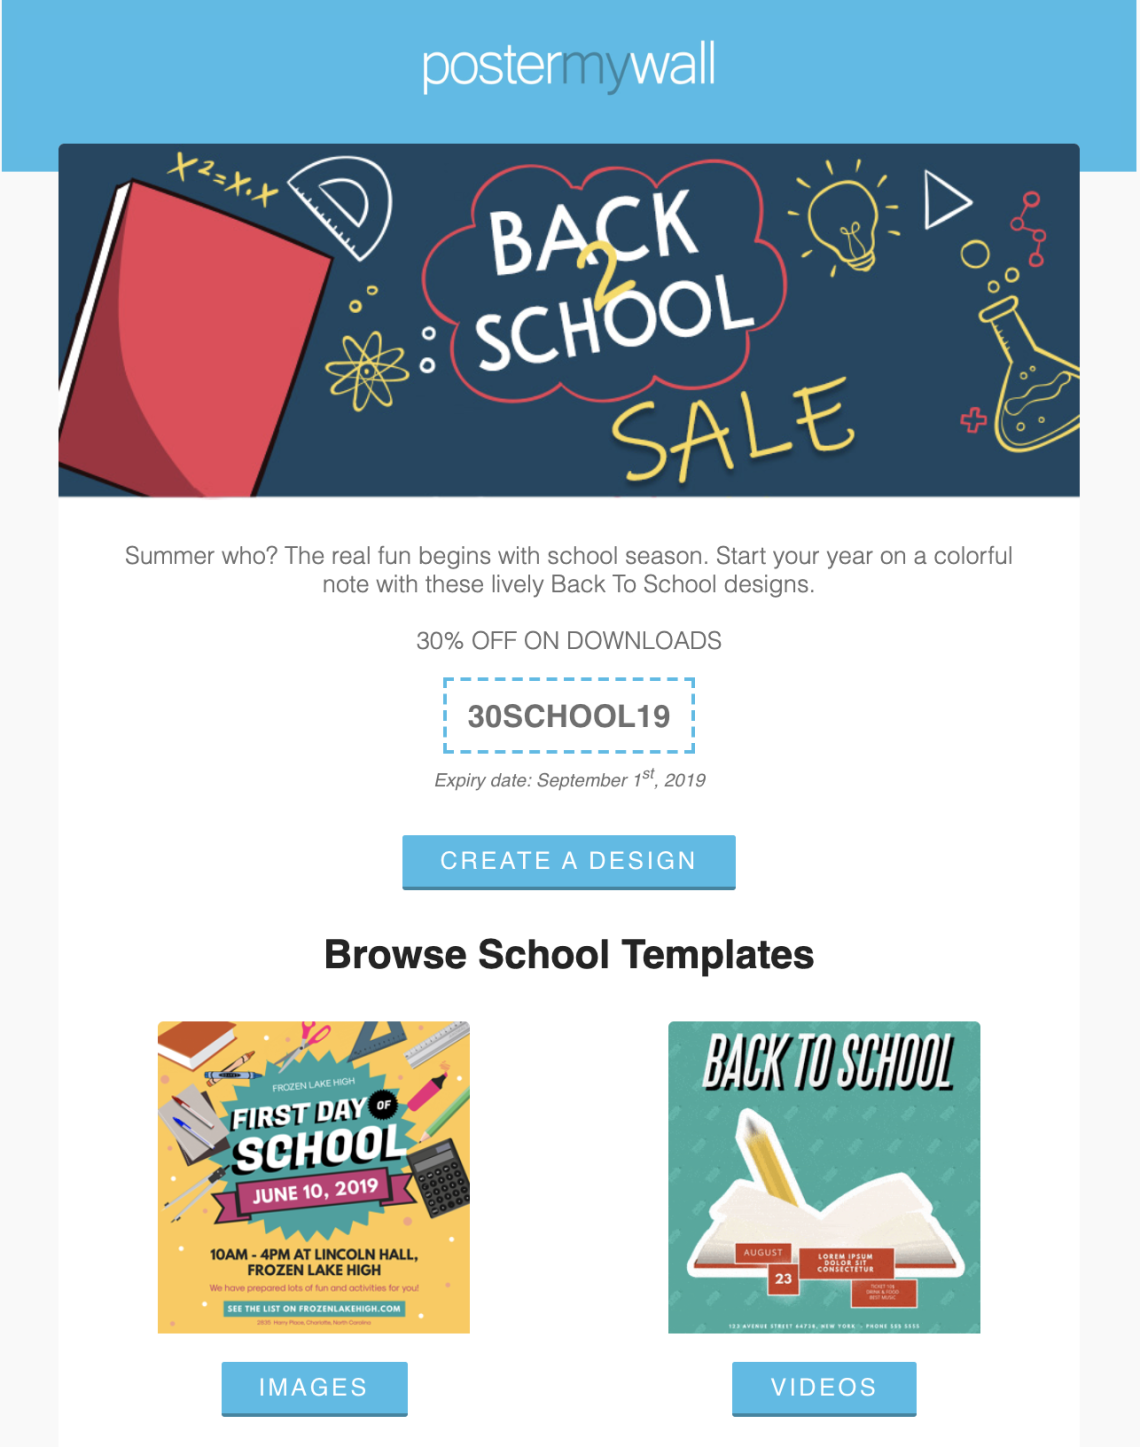 PosterMywall #BacktoSchool Sale